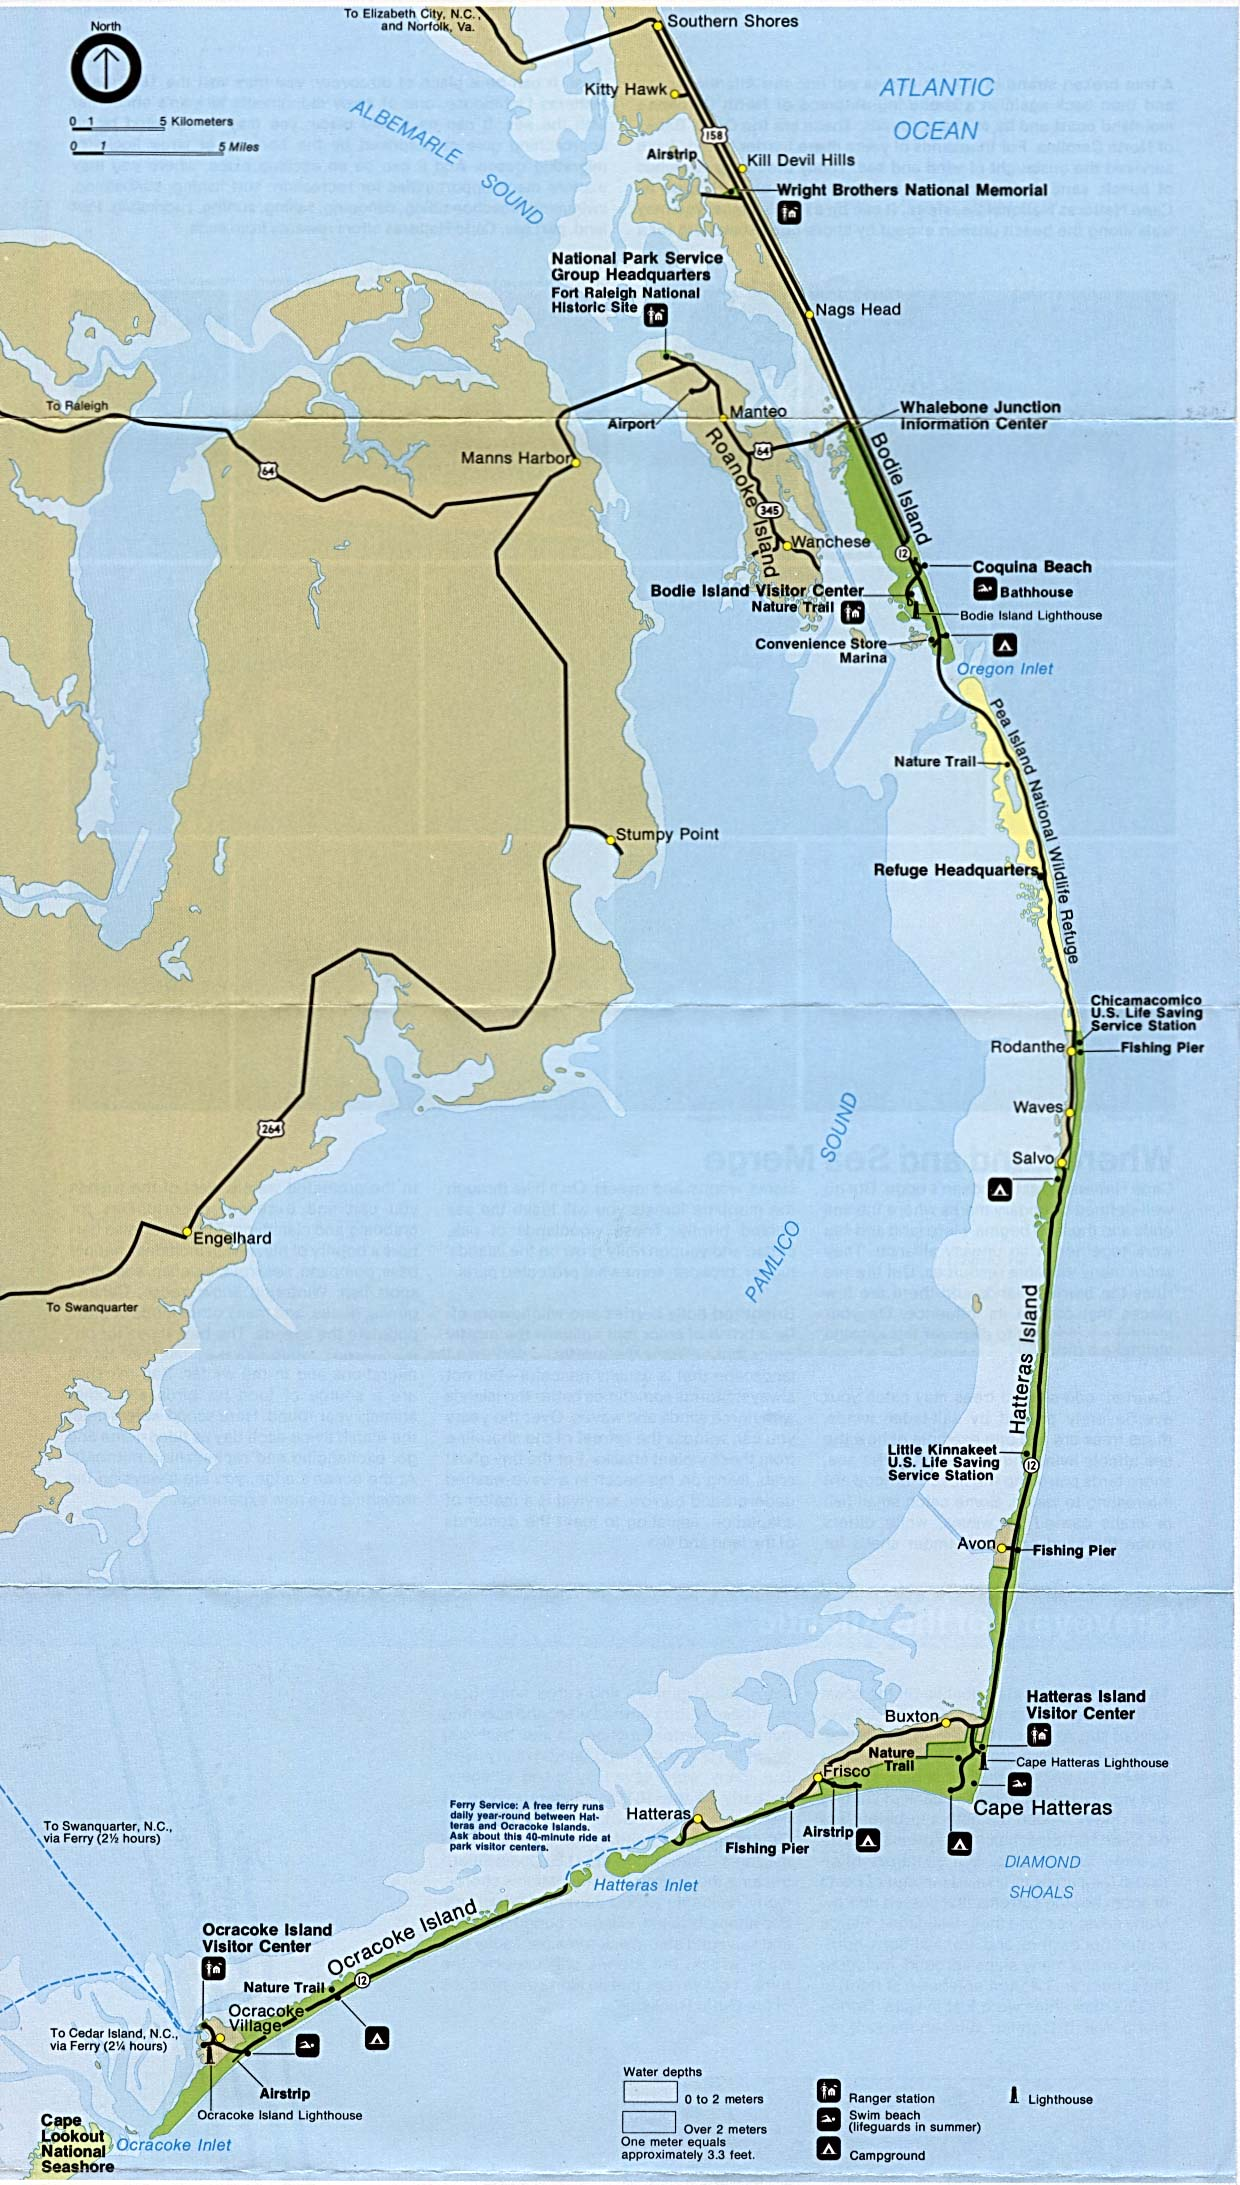 Maps of Area Map Cape Hatteras National Seas, North ... United States Area Map on ghana area map, plains area map, us and canada time zone map, call area map, german area map, seattle university area map, mountaineer country area map, madagascar area map, sand hill area map, southwest area map, uzbekistan area map, panhandle area map, rhode island area map, international area map, west tennessee area map, india area map, north america area map, qatar area map, sonoran desert area map, kurdistan area map,